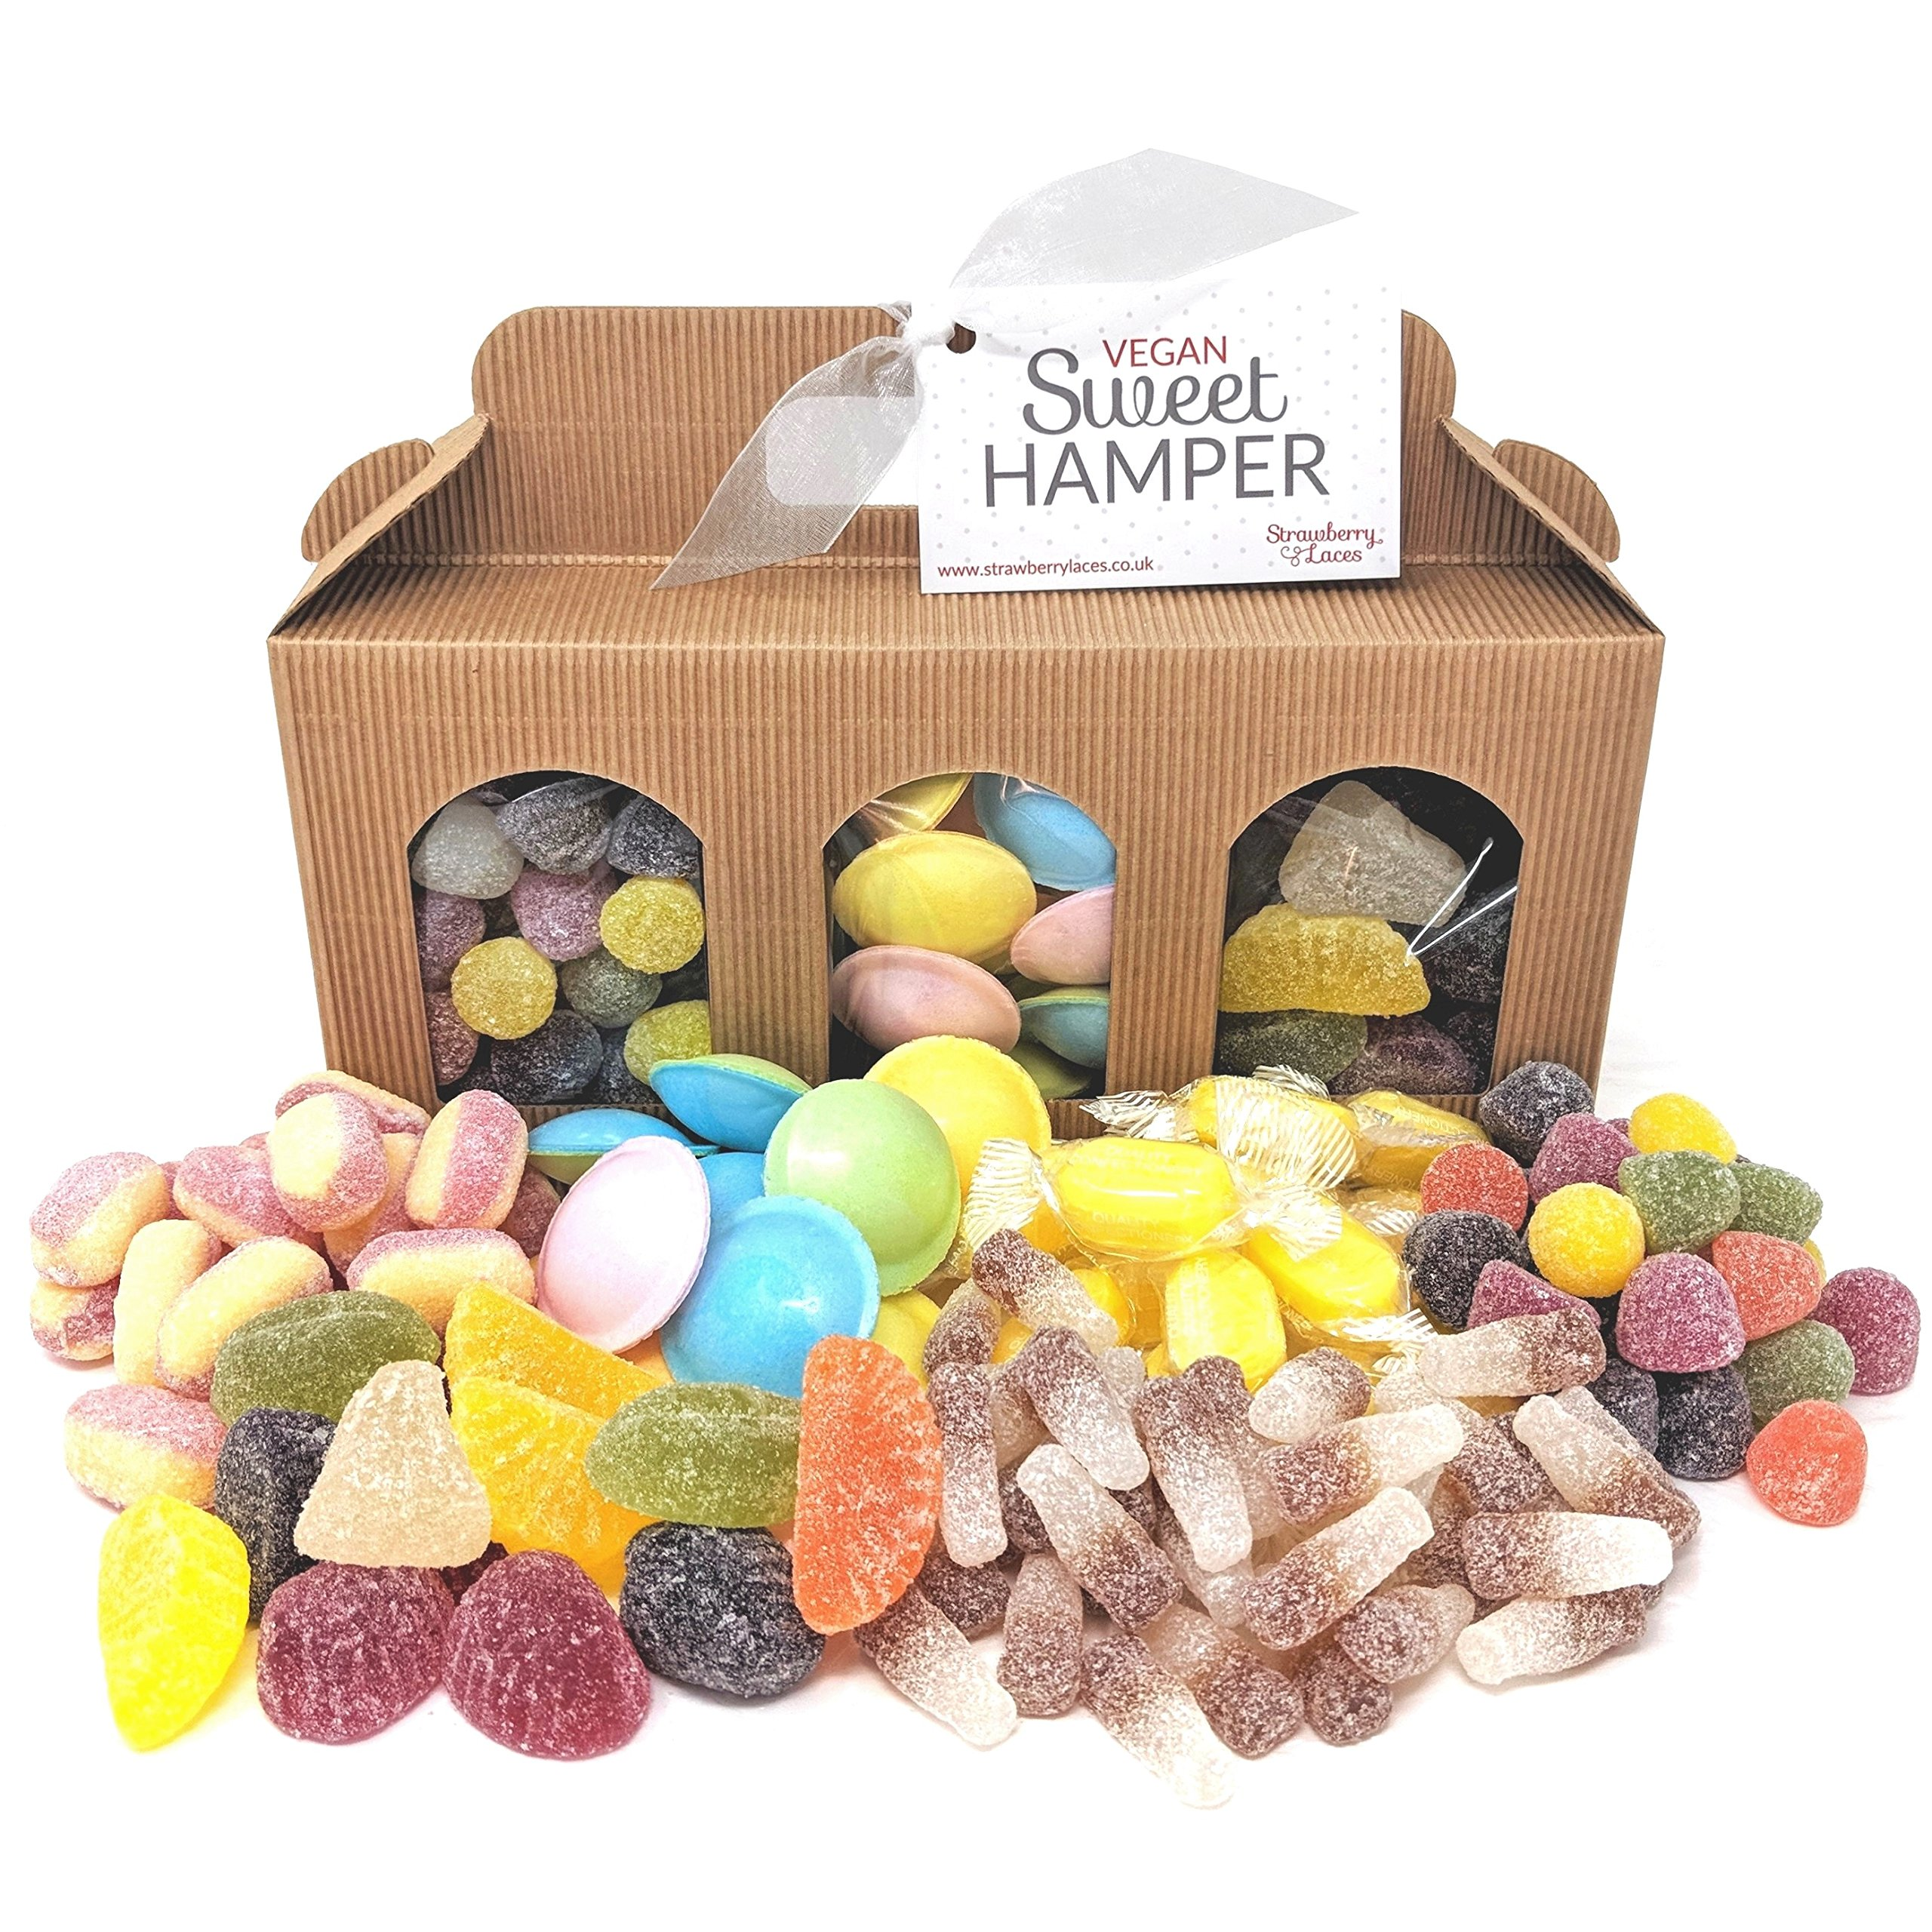 Vegan gifts amazon vegan sweet hamper box great vegan vegetarian gift for birthday easter christmas negle Choice Image